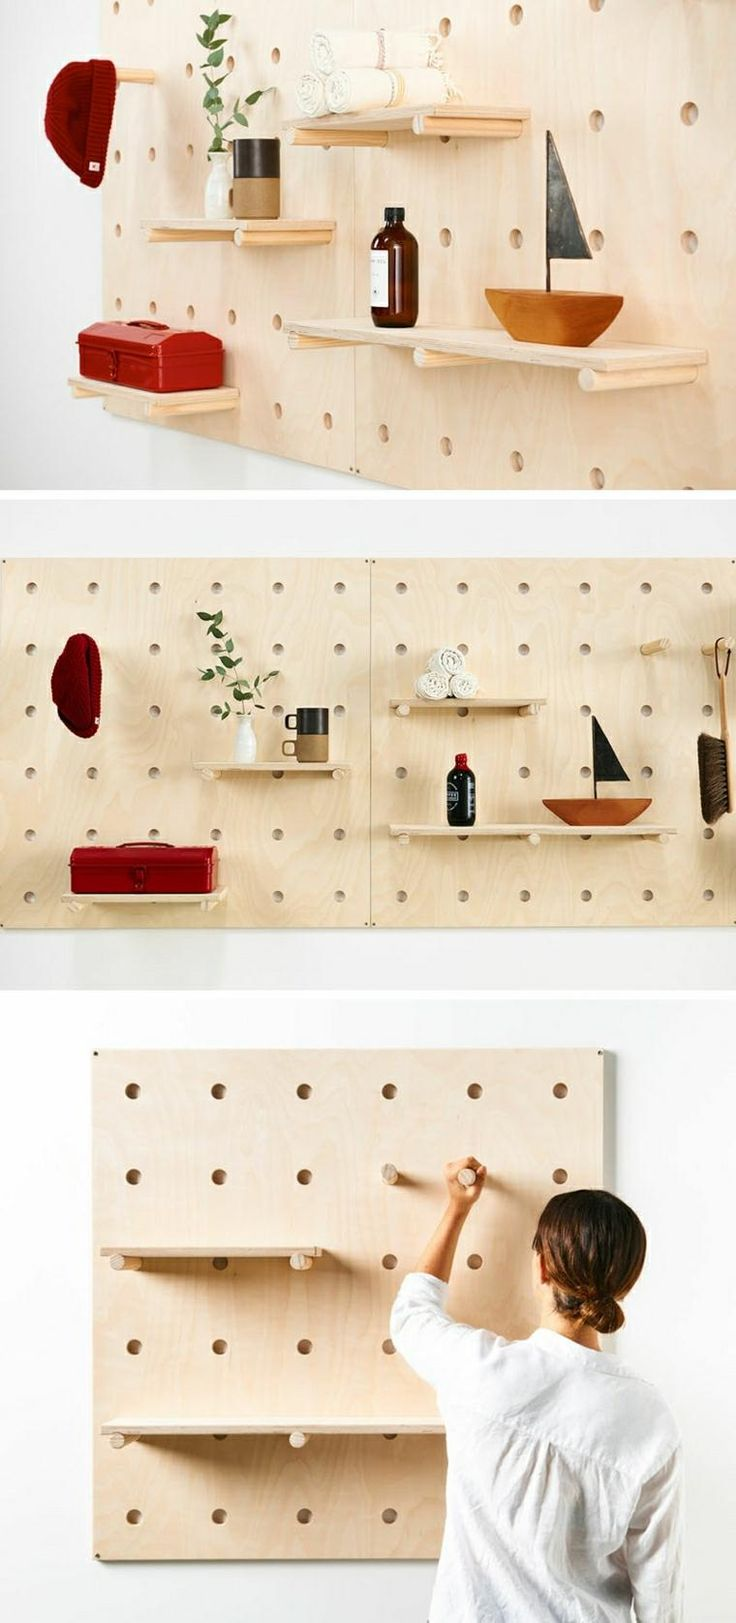 25 best ideas about panneau japonais on pinterest stores panneau salon japonais and rideau. Black Bedroom Furniture Sets. Home Design Ideas